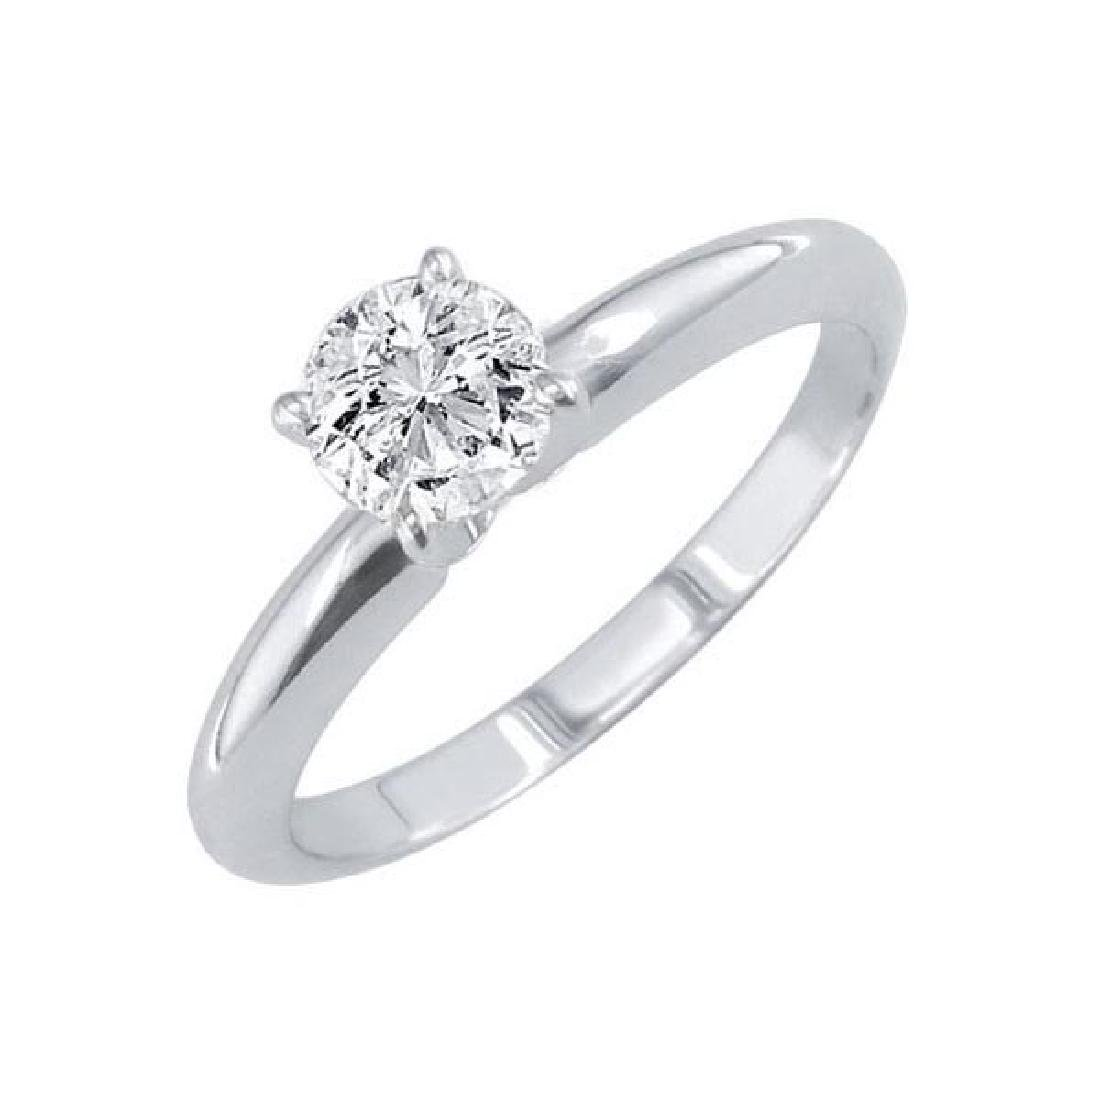 Certified 1.08 CTW Round Diamond Solitaire 14k Ring G/S